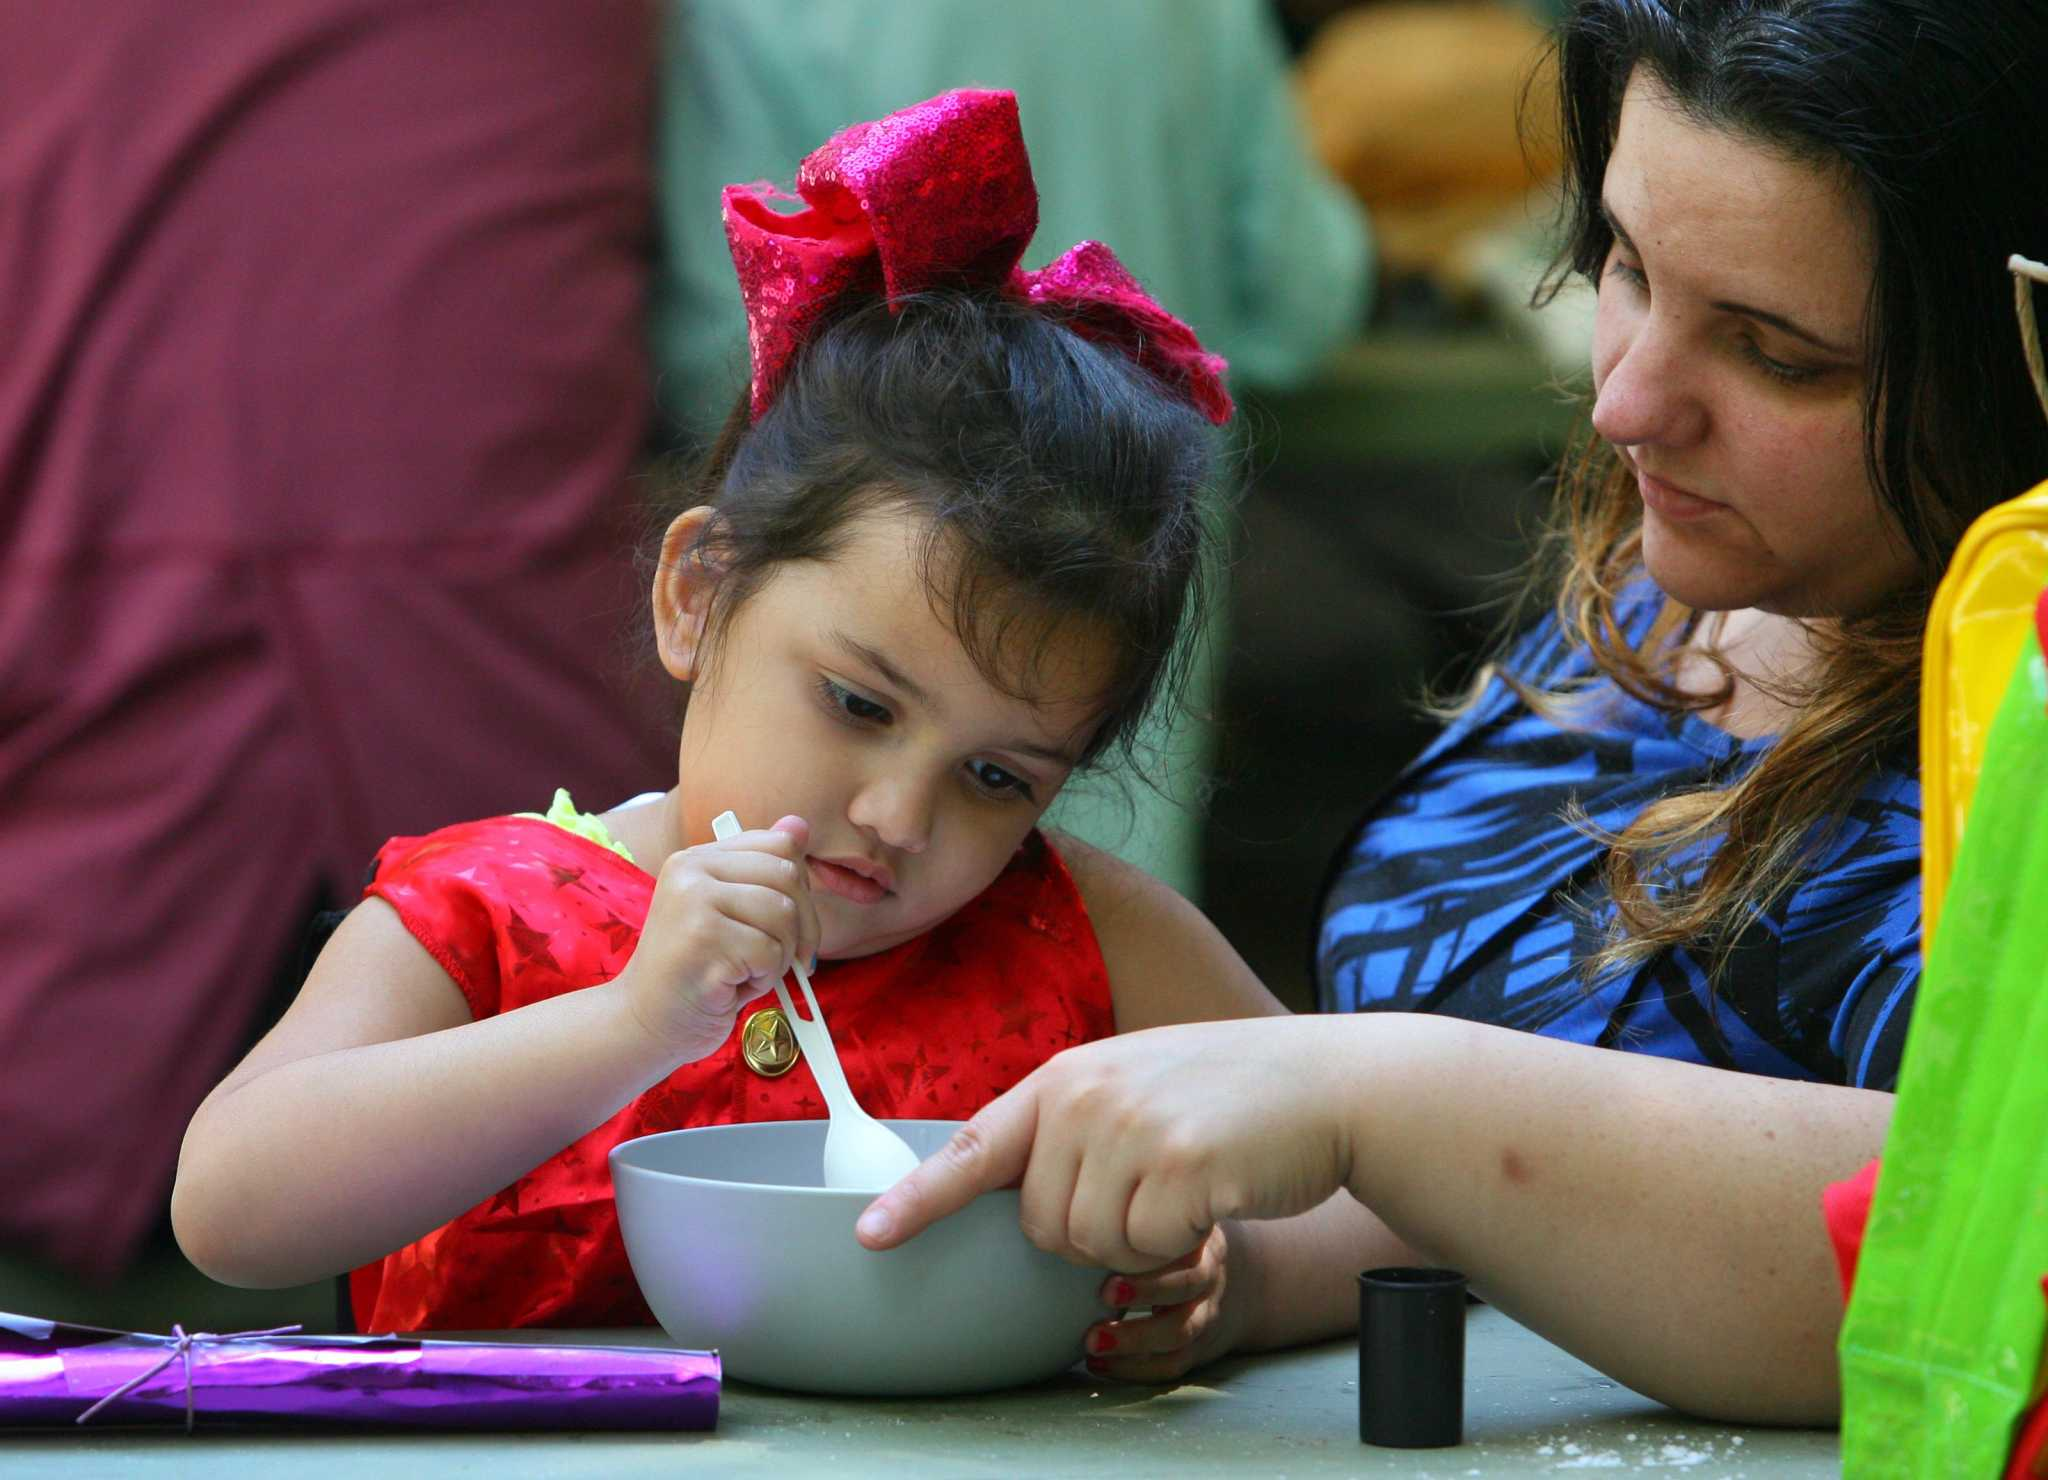 Samantha Ponce, 3, stirs ingredients in potion class as her mom Stefanie helps her hold the bowl during a a Wizard Picnic held to celebrate Harry Potter's birthday at Stamford Museum & Nature Center in Stamford, Conn., on Saturday July 31, 2021. Kids came dressed as wizards and took part in several activities like making their own wands, a potions class, a visit with some magical creatures from the nature center and snacks.